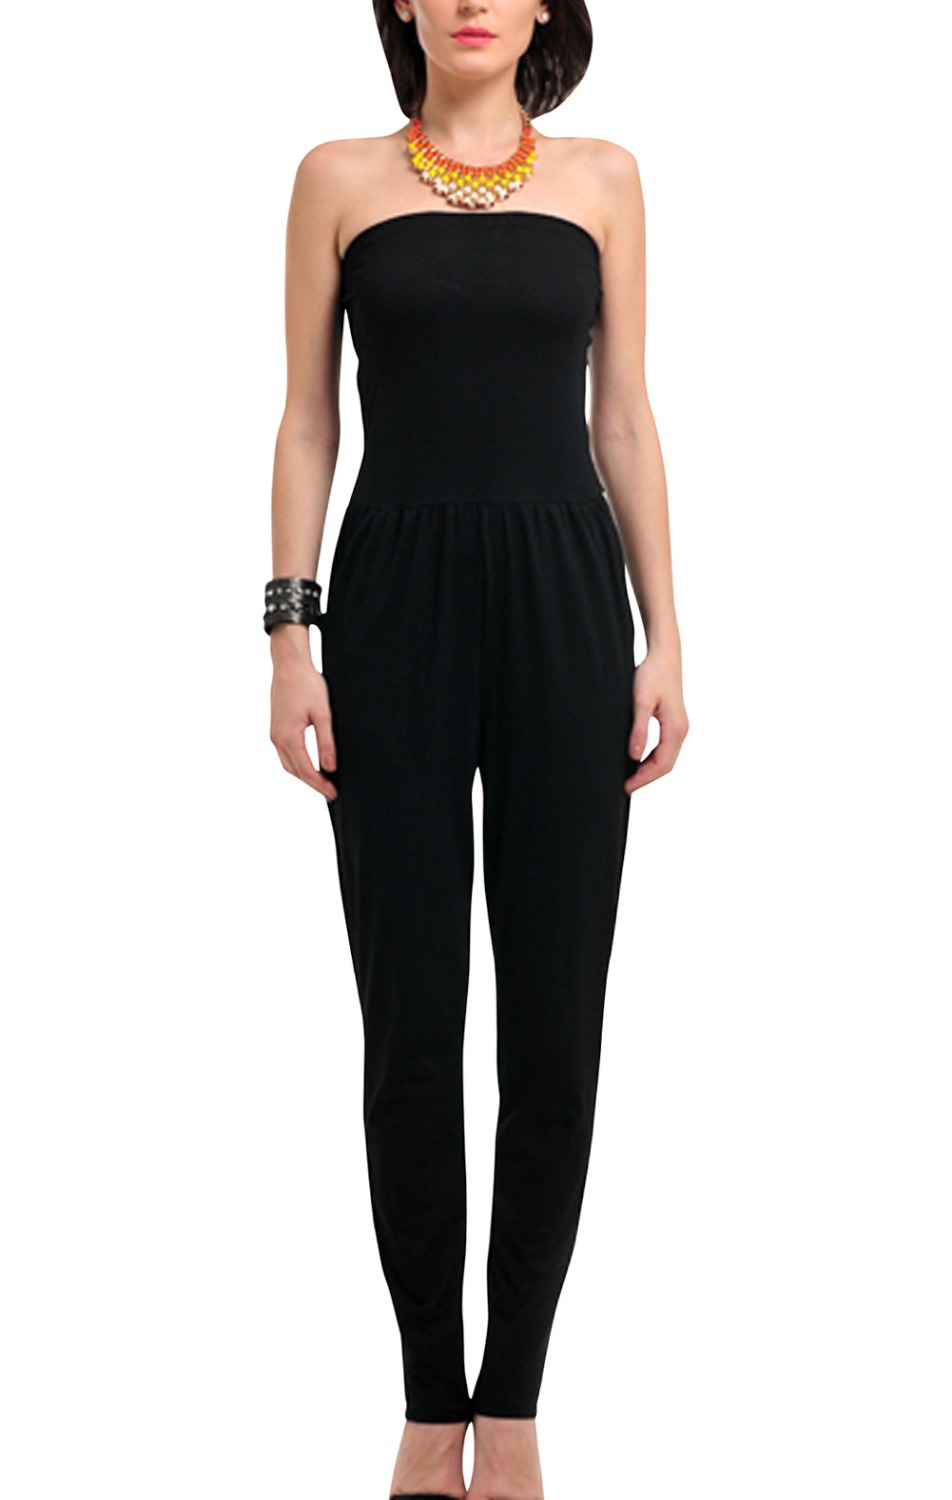 Women's Strapless Jumpsuit Black Skinny on Aliexpress.com ...